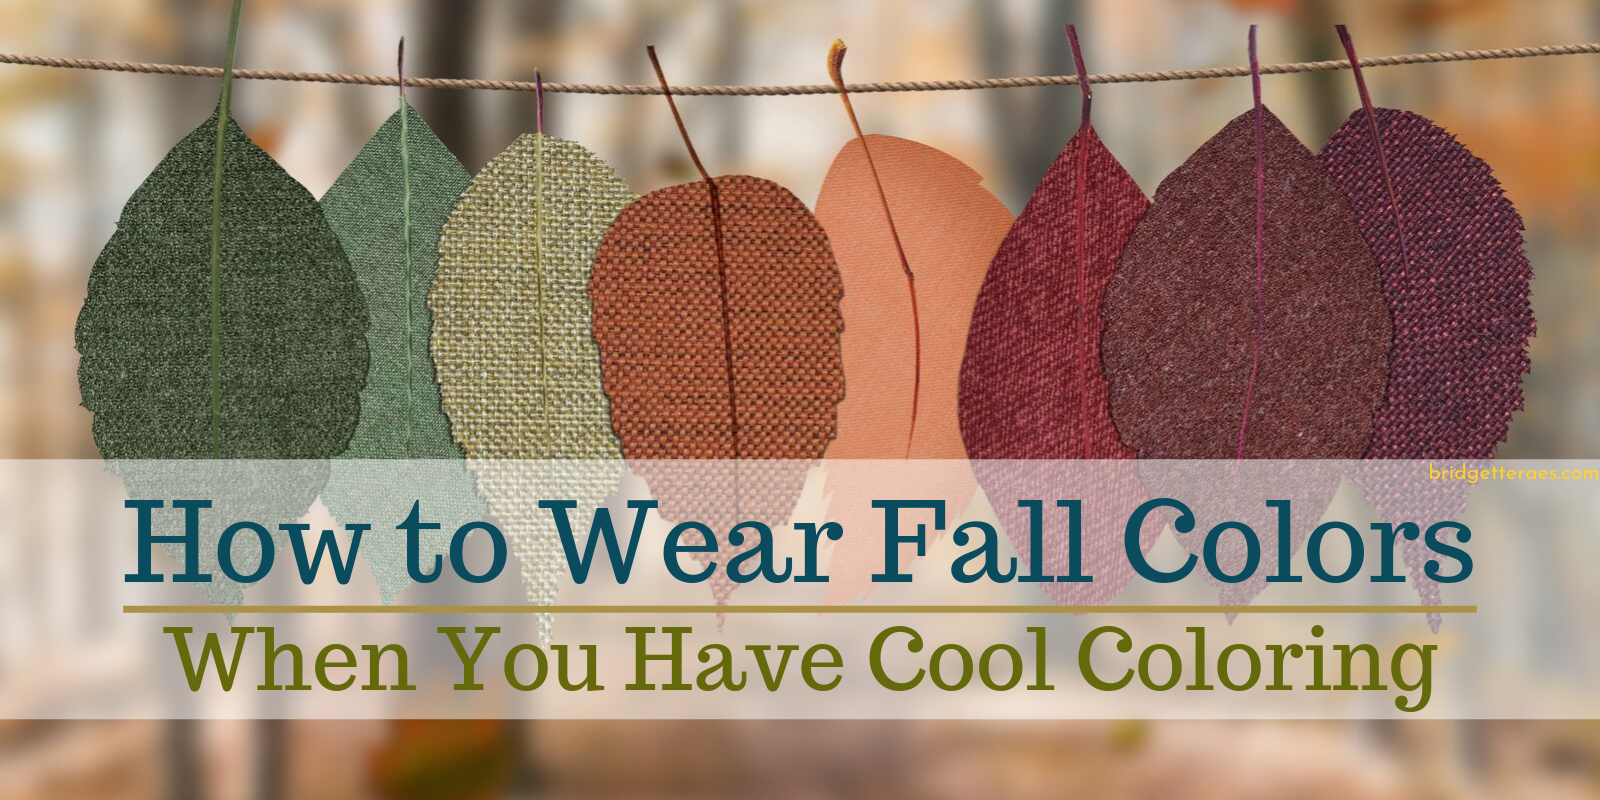 How to Wear Fall Colors When You Have Cool Coloring